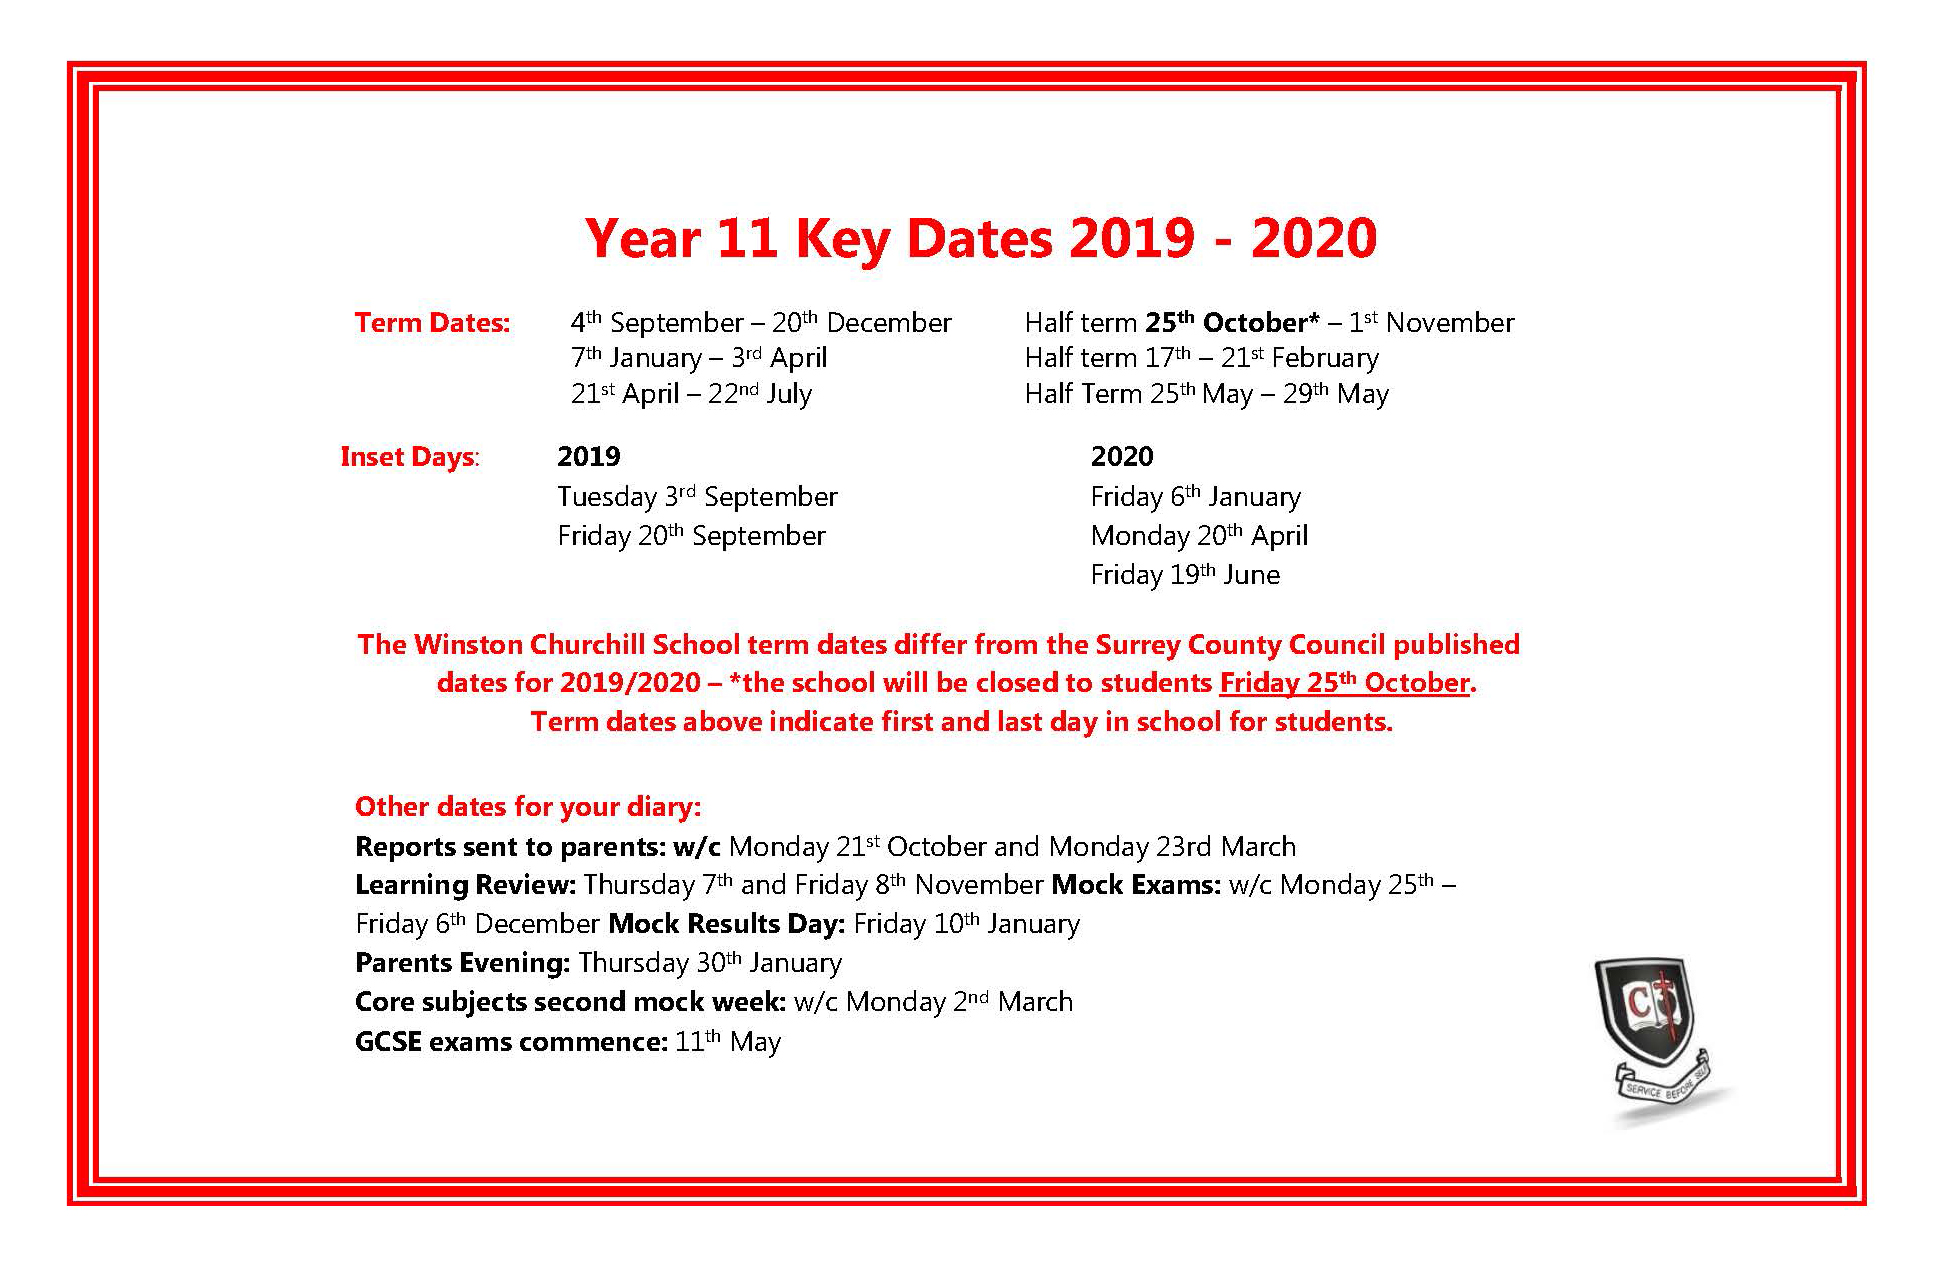 Year 11 Key Dates 2019-20 a